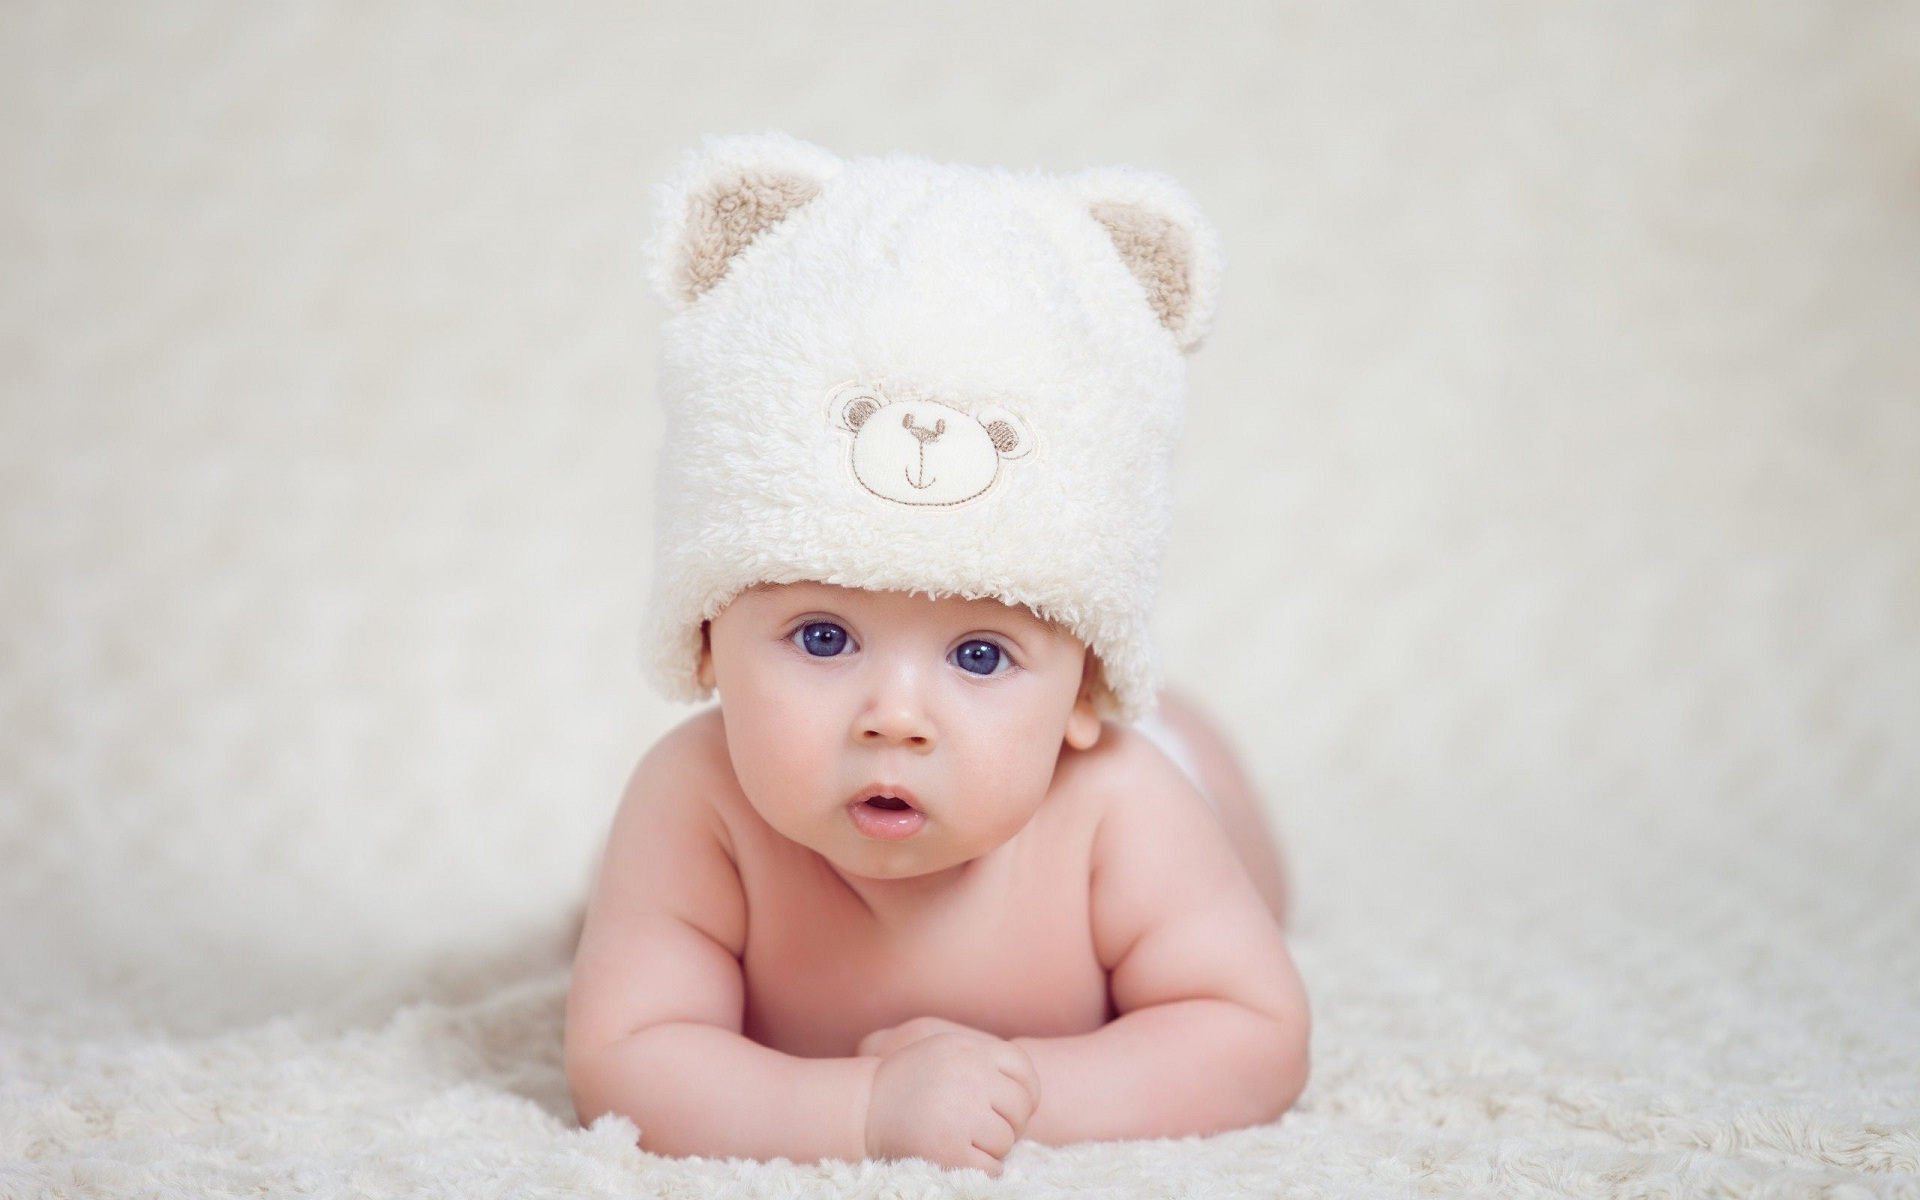 New born baby free image download